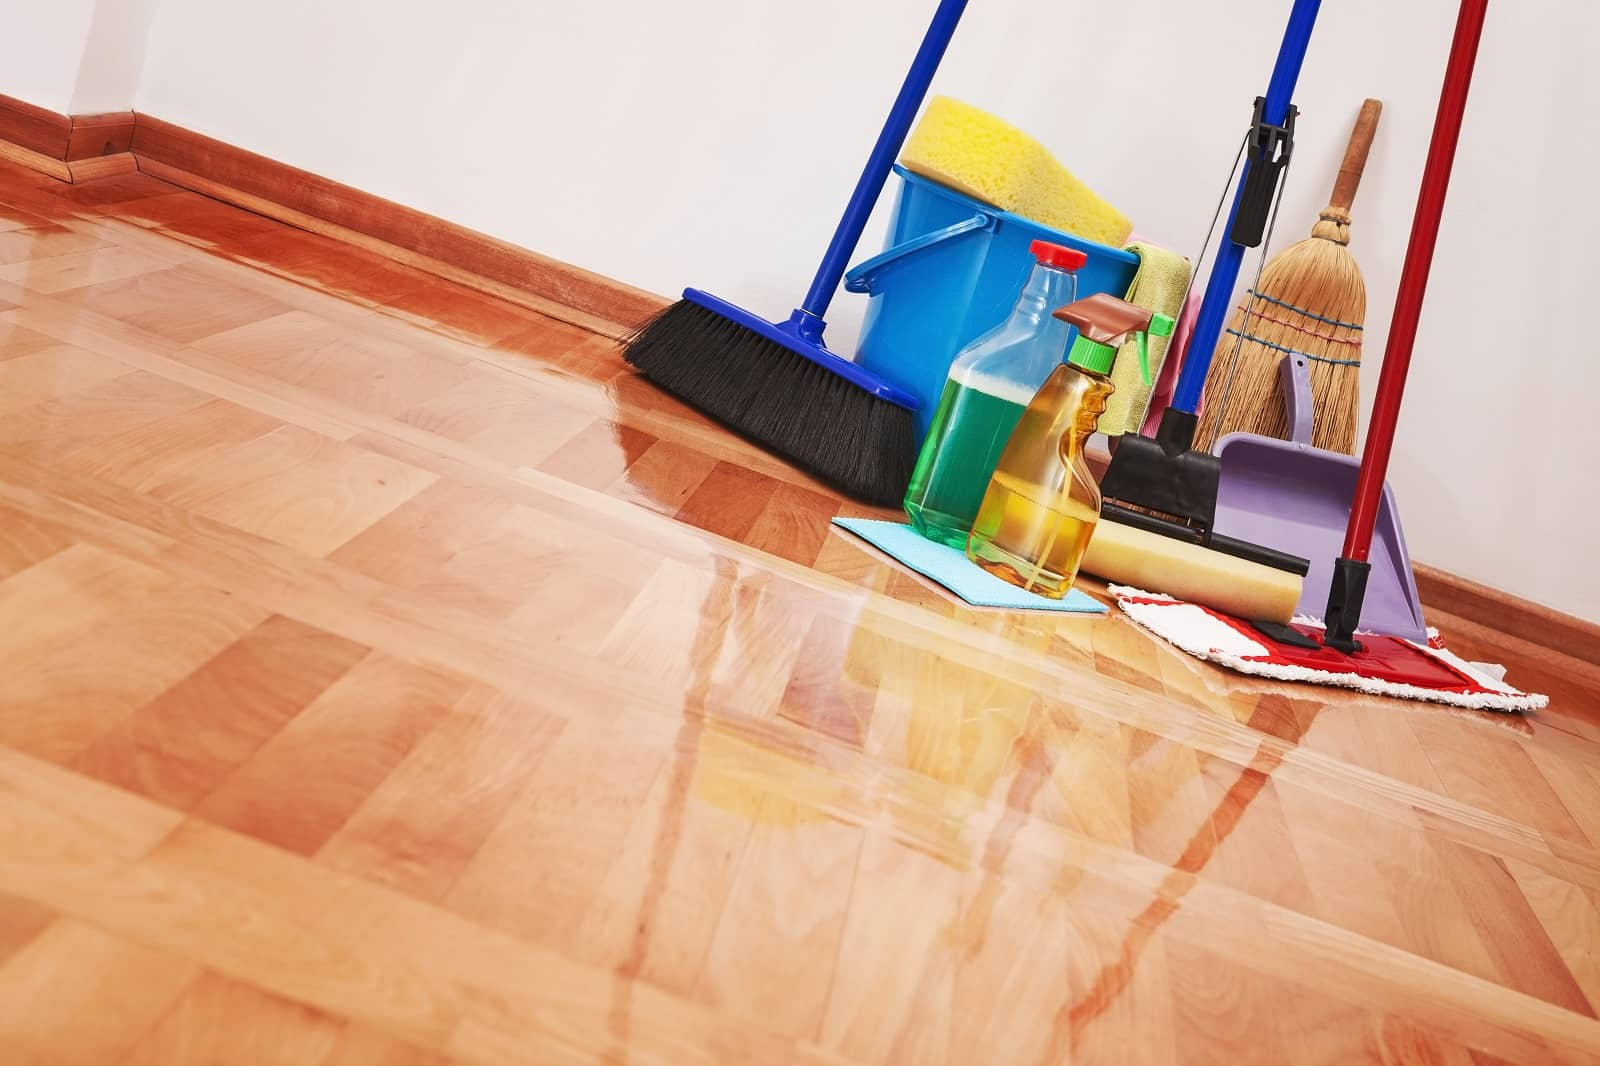 https://devices4home.com/wp-content/uploads/2019/02/laminate-floor-cleaning-min.jpg